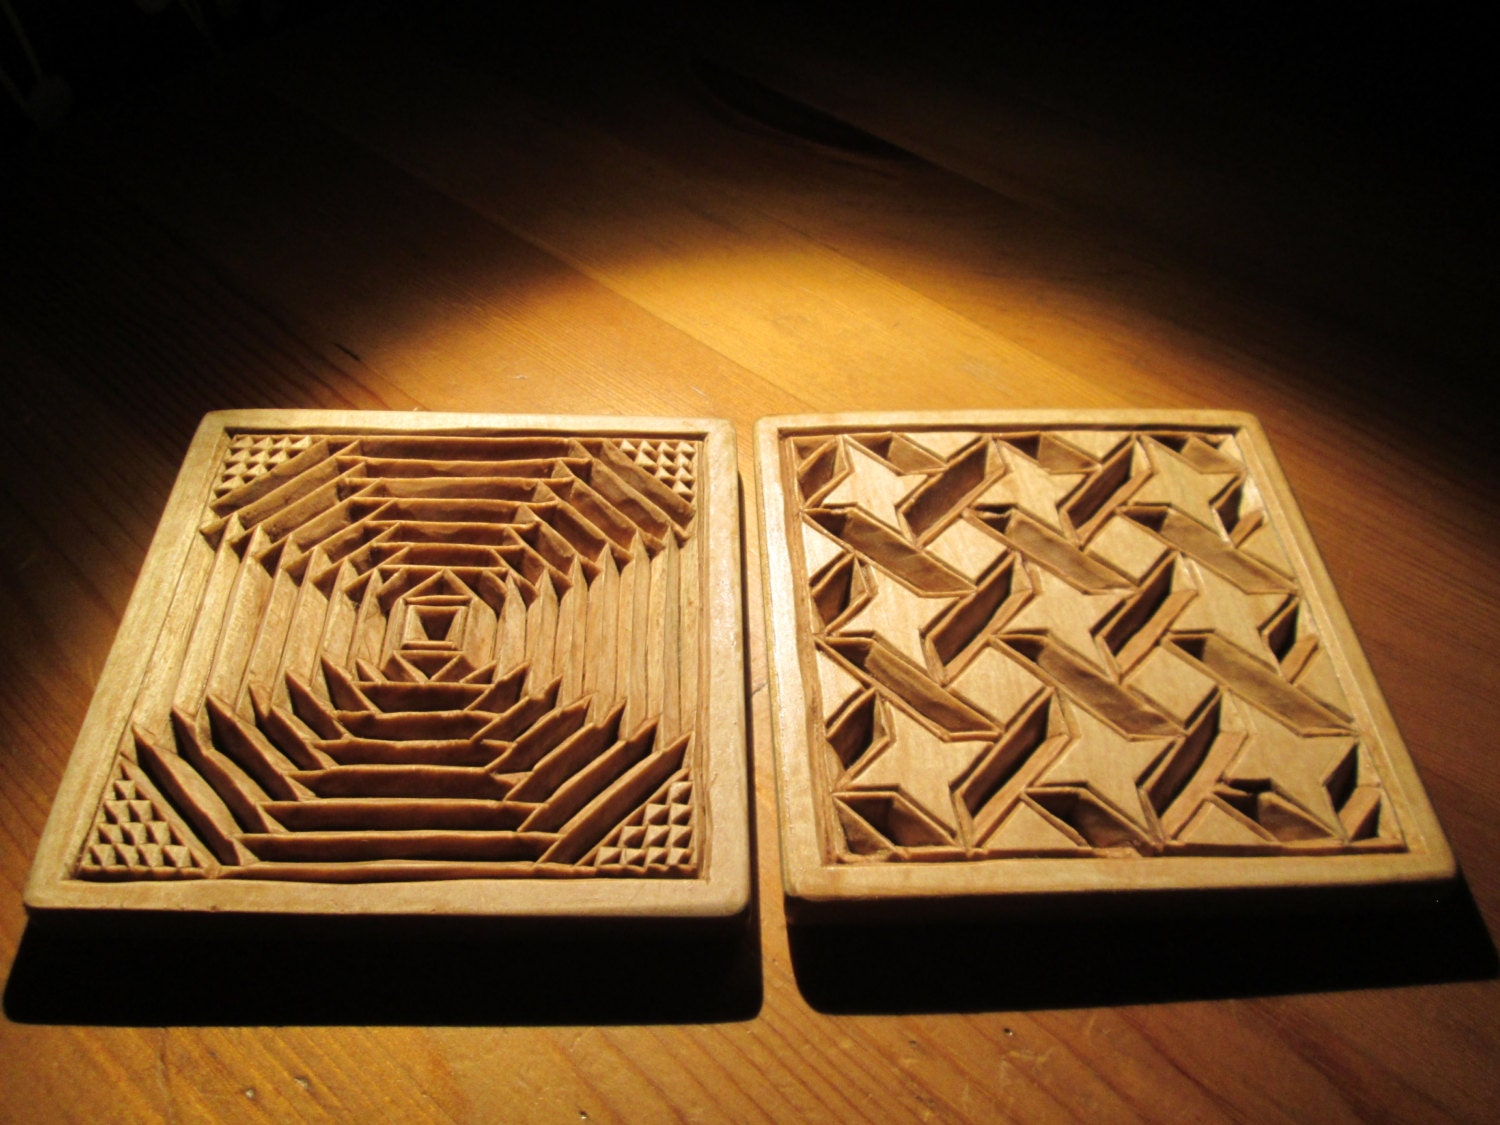 Two wooden mug coasters chip carving wood